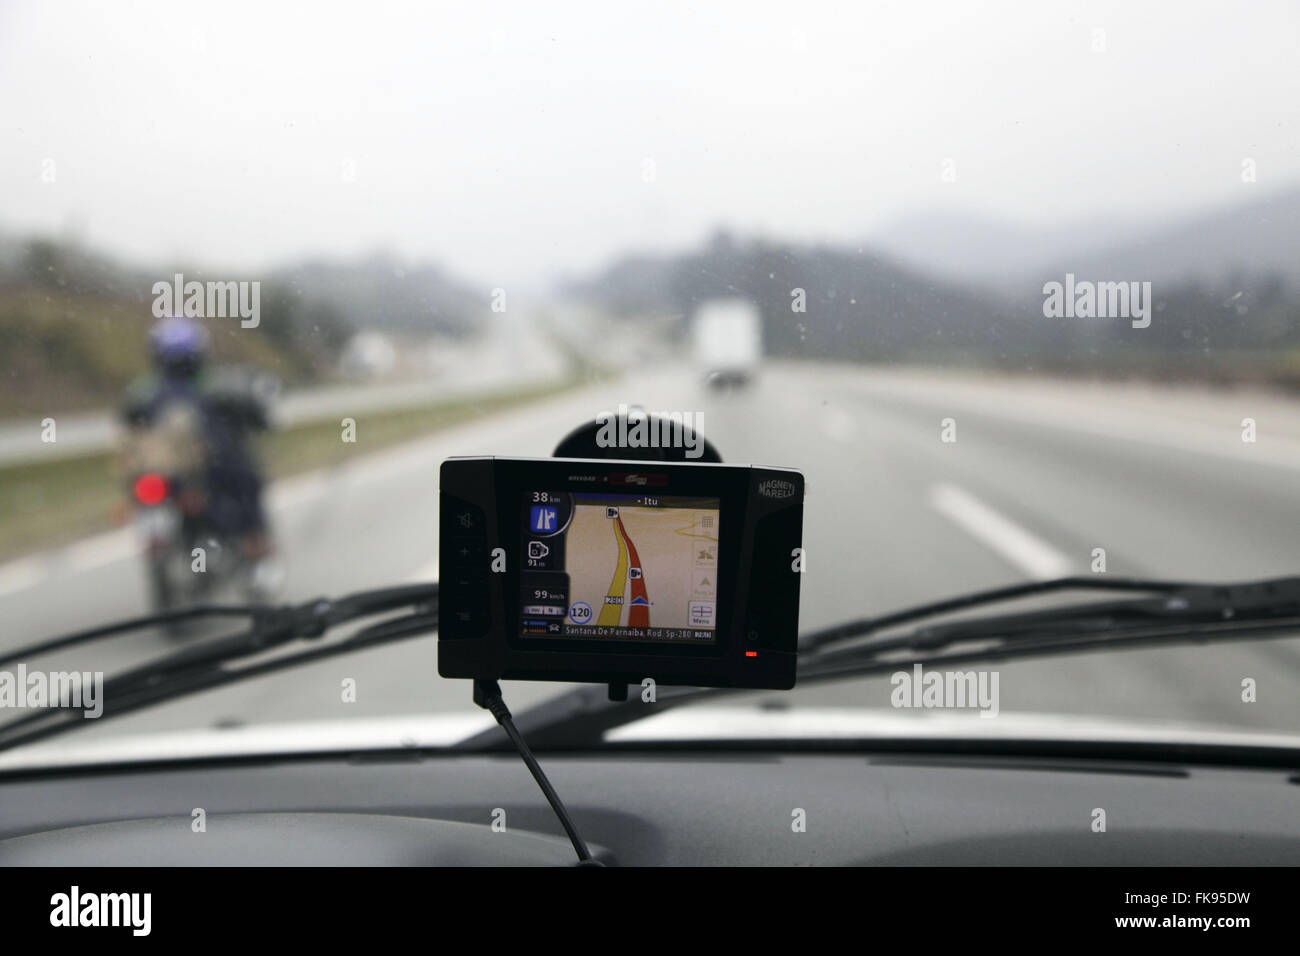 Global Positioning System - GPS car indicating way to Castelo Branco highway - Stock Image